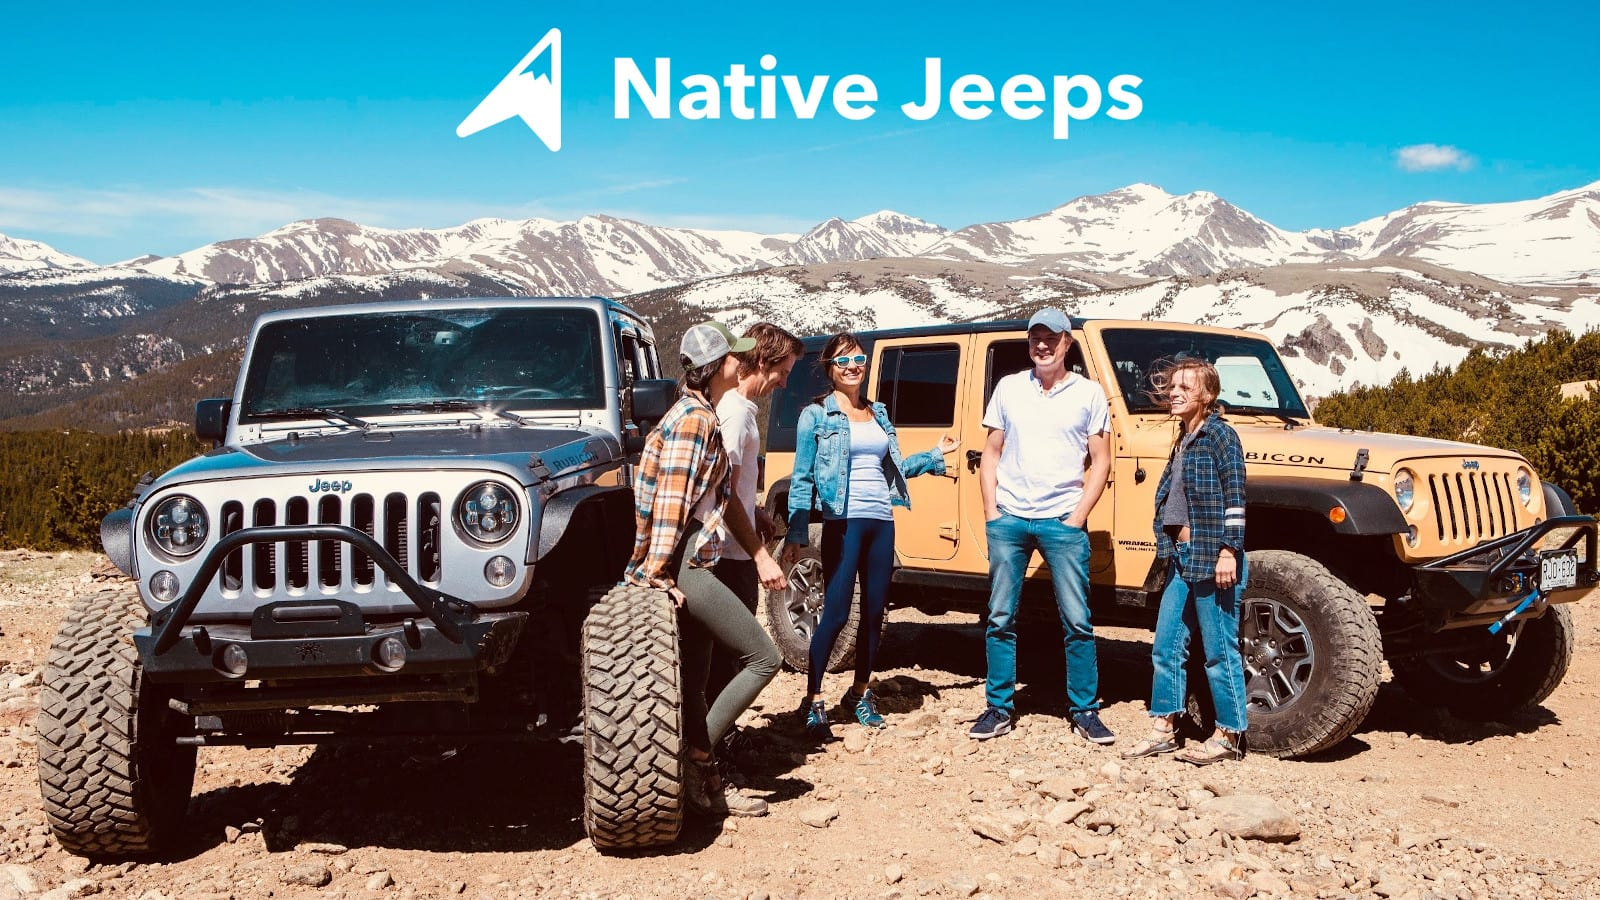 Native Jeeps Colorado Jeep Tour Group of People